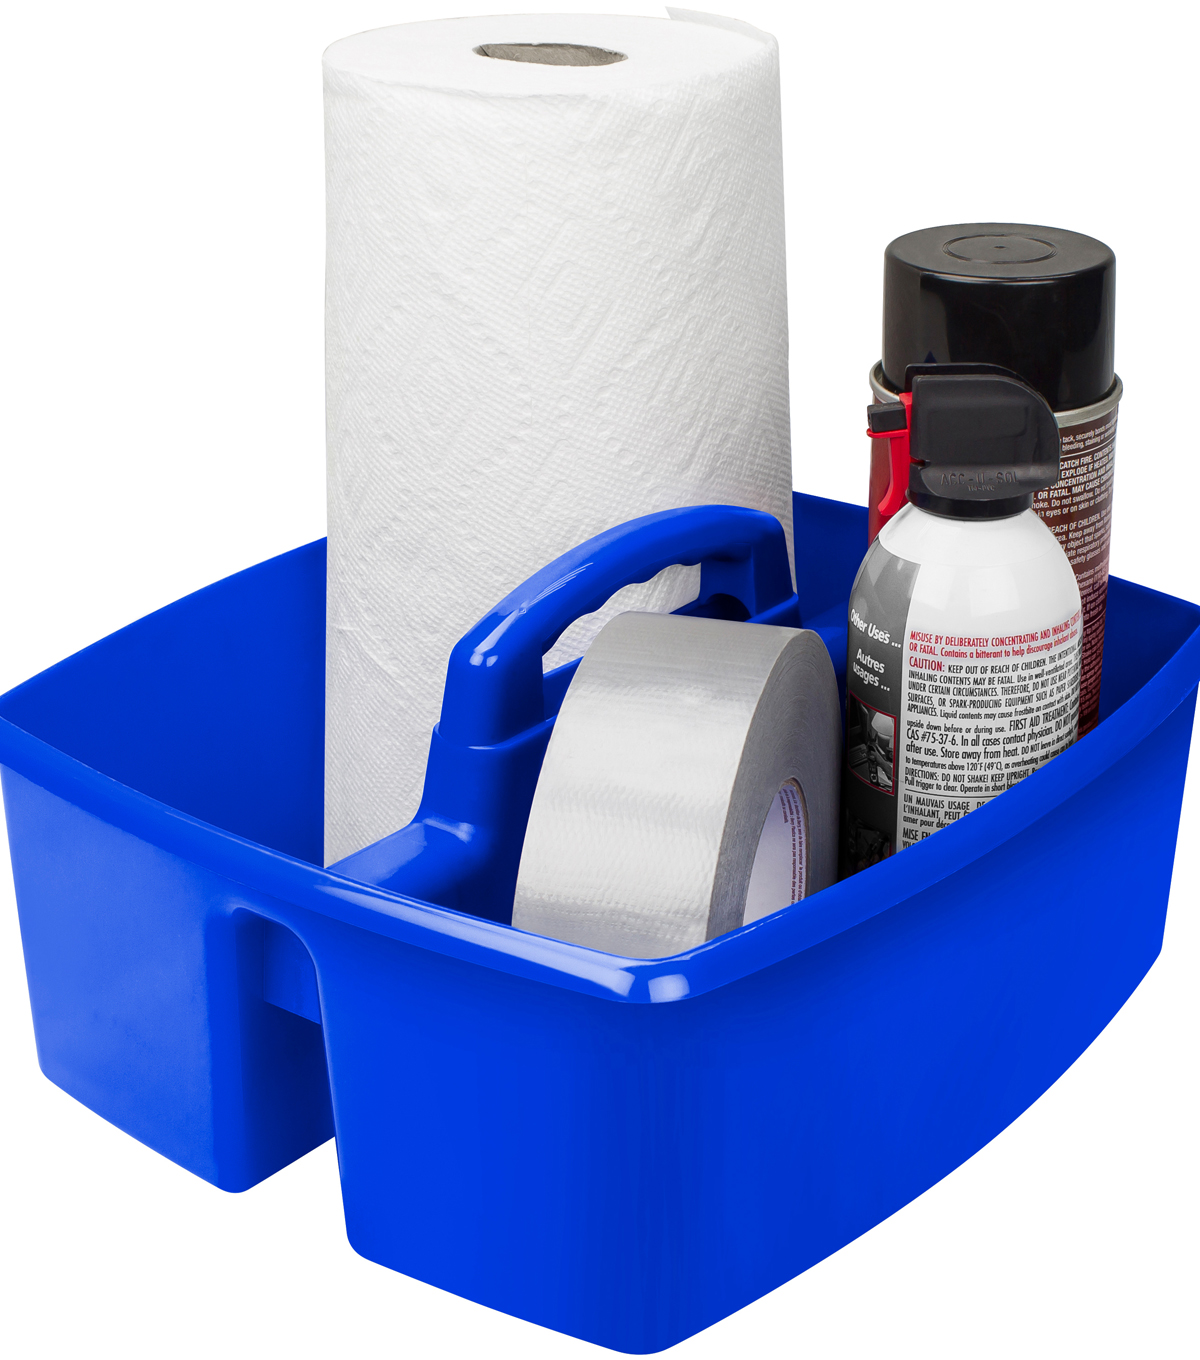 Storex Large 2-compartment Caddy-Blue